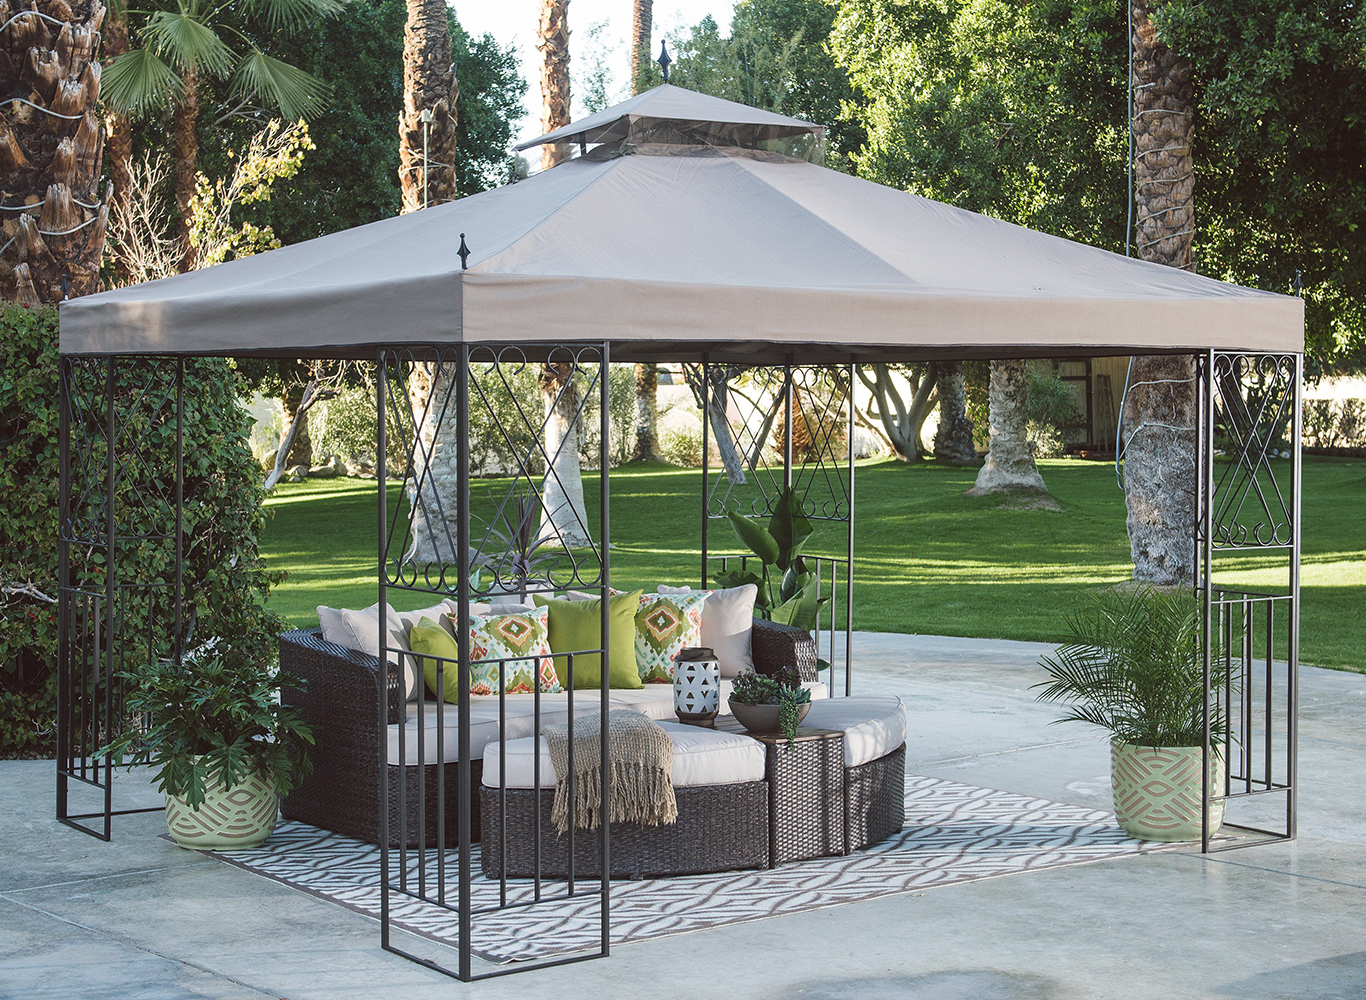 Gazebo Ideas Ways To Use A Gazebo Canopy In Your Backyard Hayneedle within Ideas For Gazebos Backyard